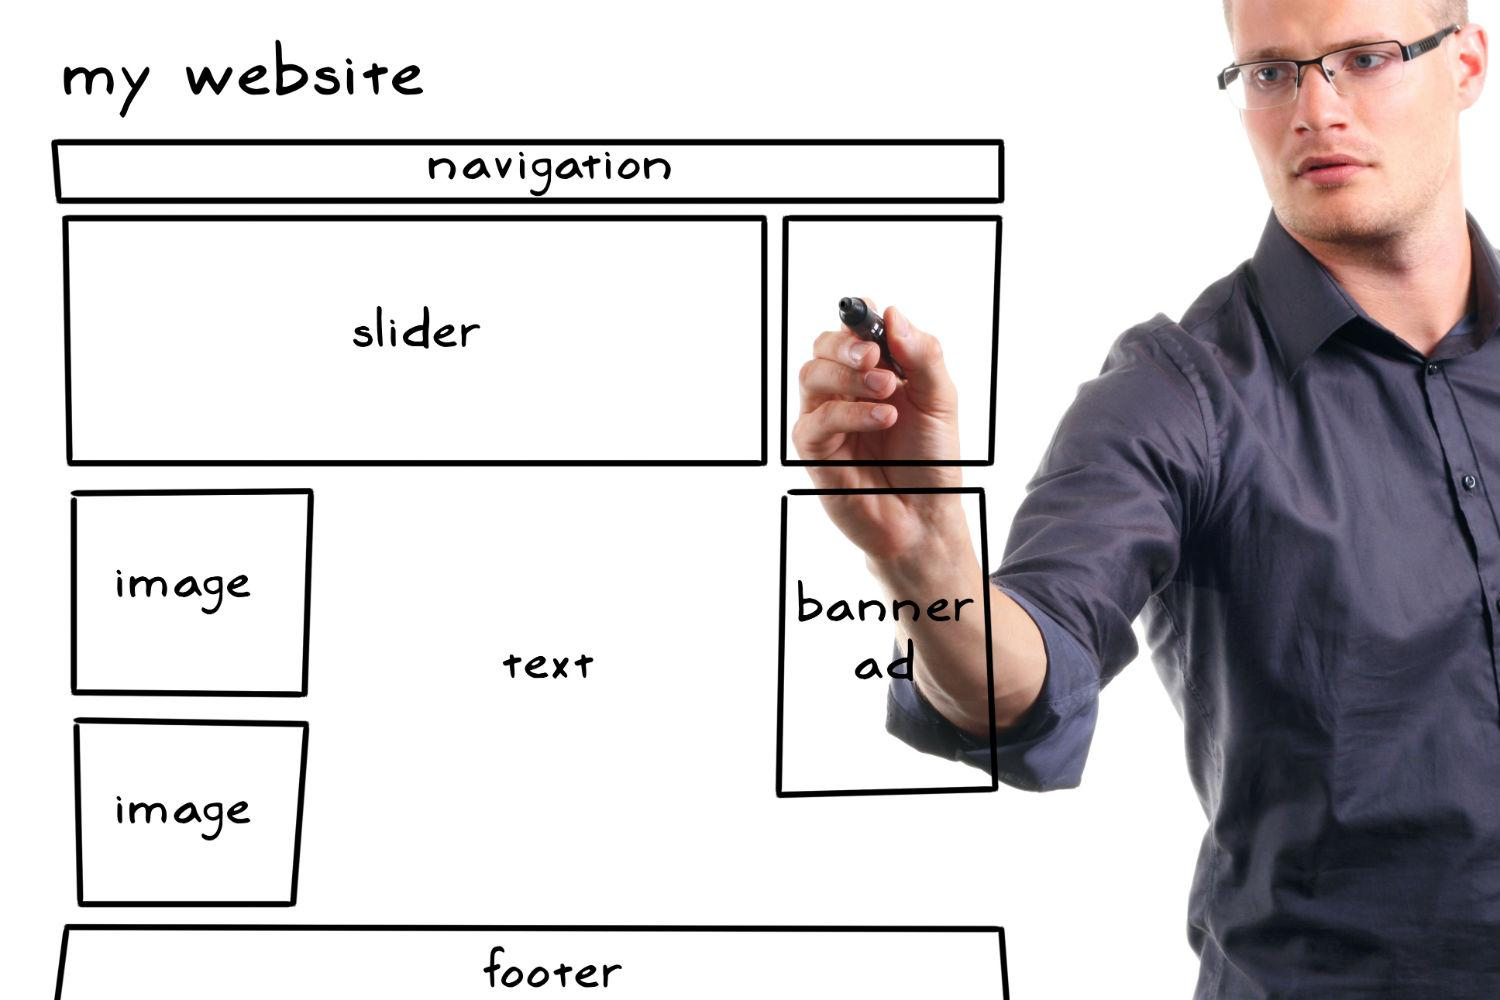 5 Web design trends that have increased in popularity so far in 2014